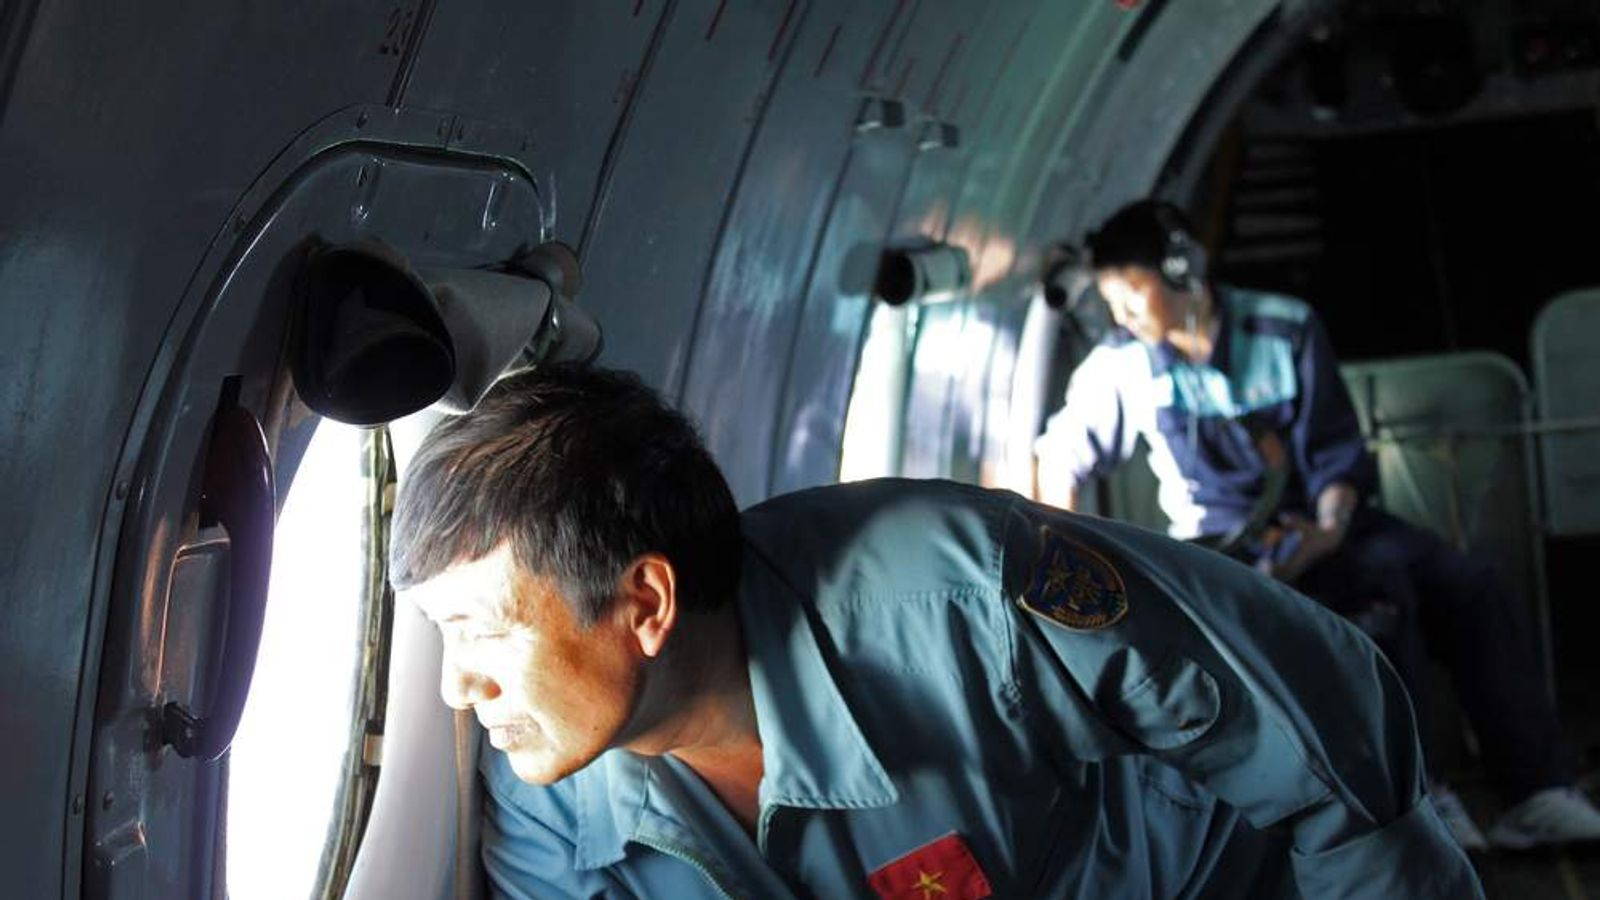 VIETNAM-MALAYSIA-MALAYSIAAIRLINES-CHINA-TRANSPORT-ACCIDENT-AVIAT